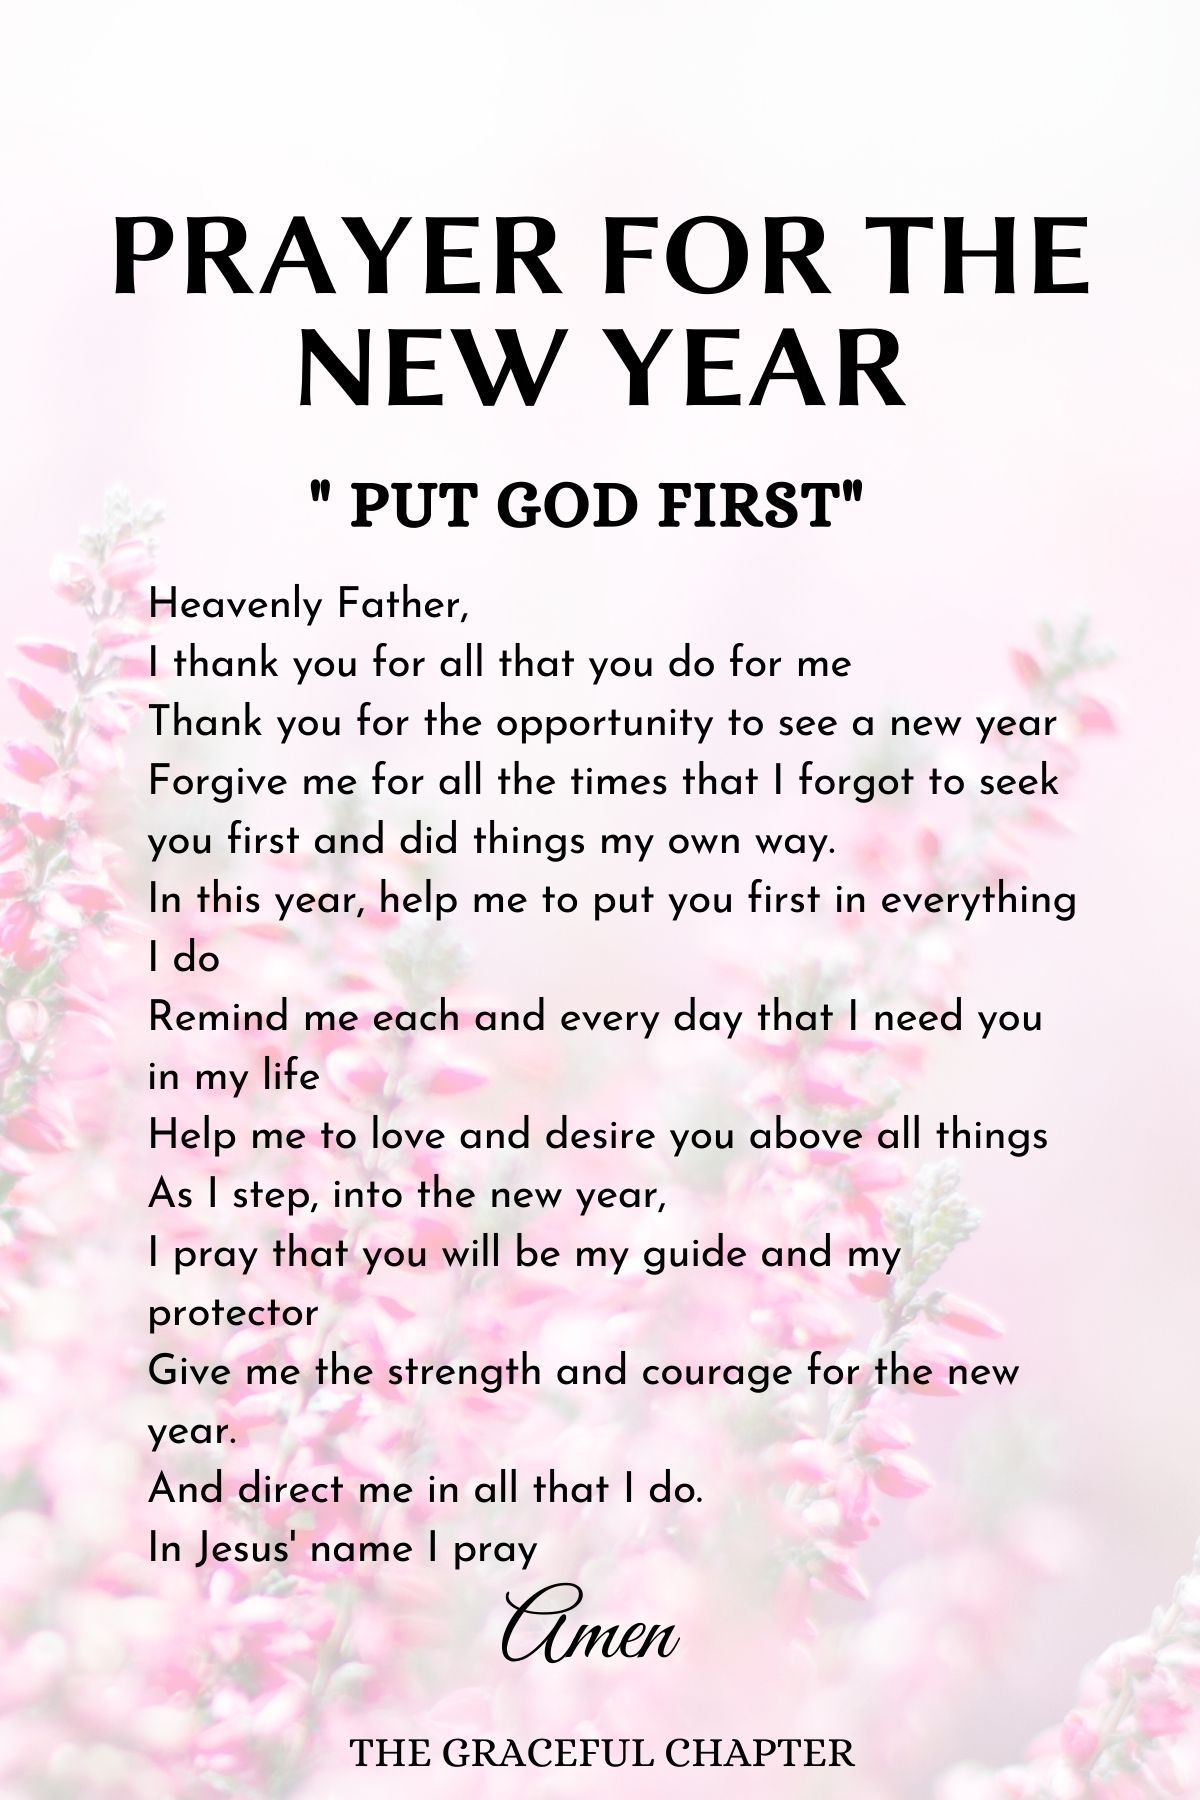 Prayers for the new year - Put God first